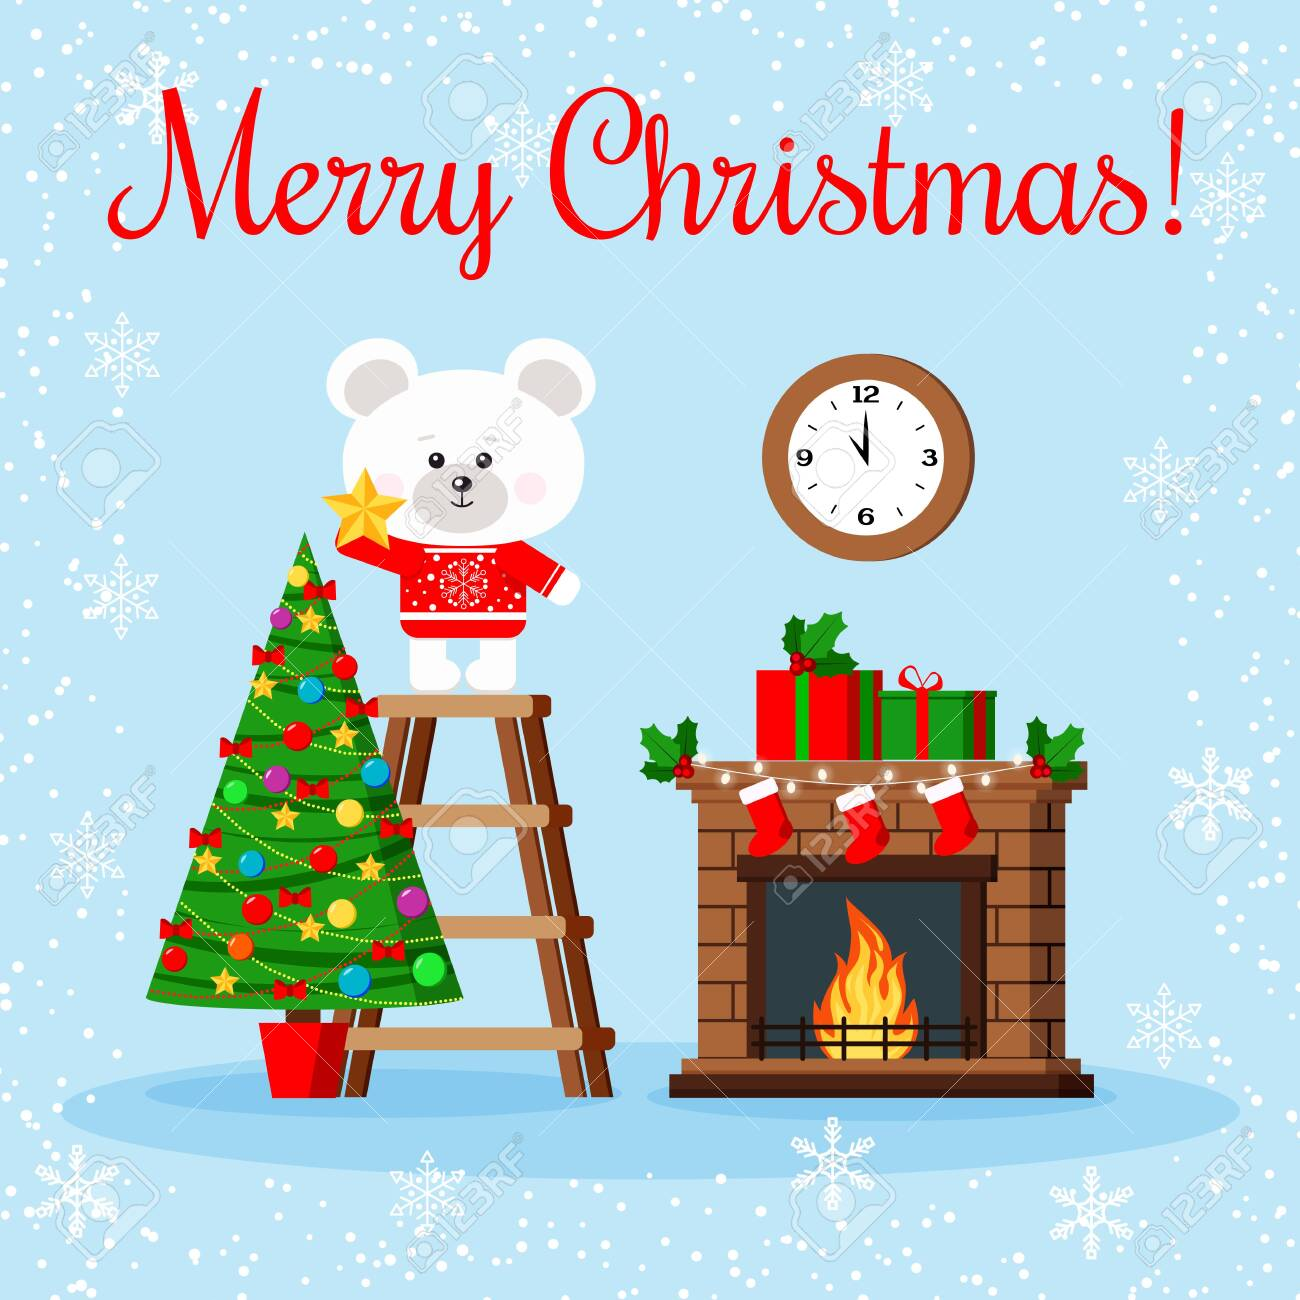 Christmas Wishes Bear.Christmas Greeting Card Cute Polar Bear In Red Sweater Puts Star